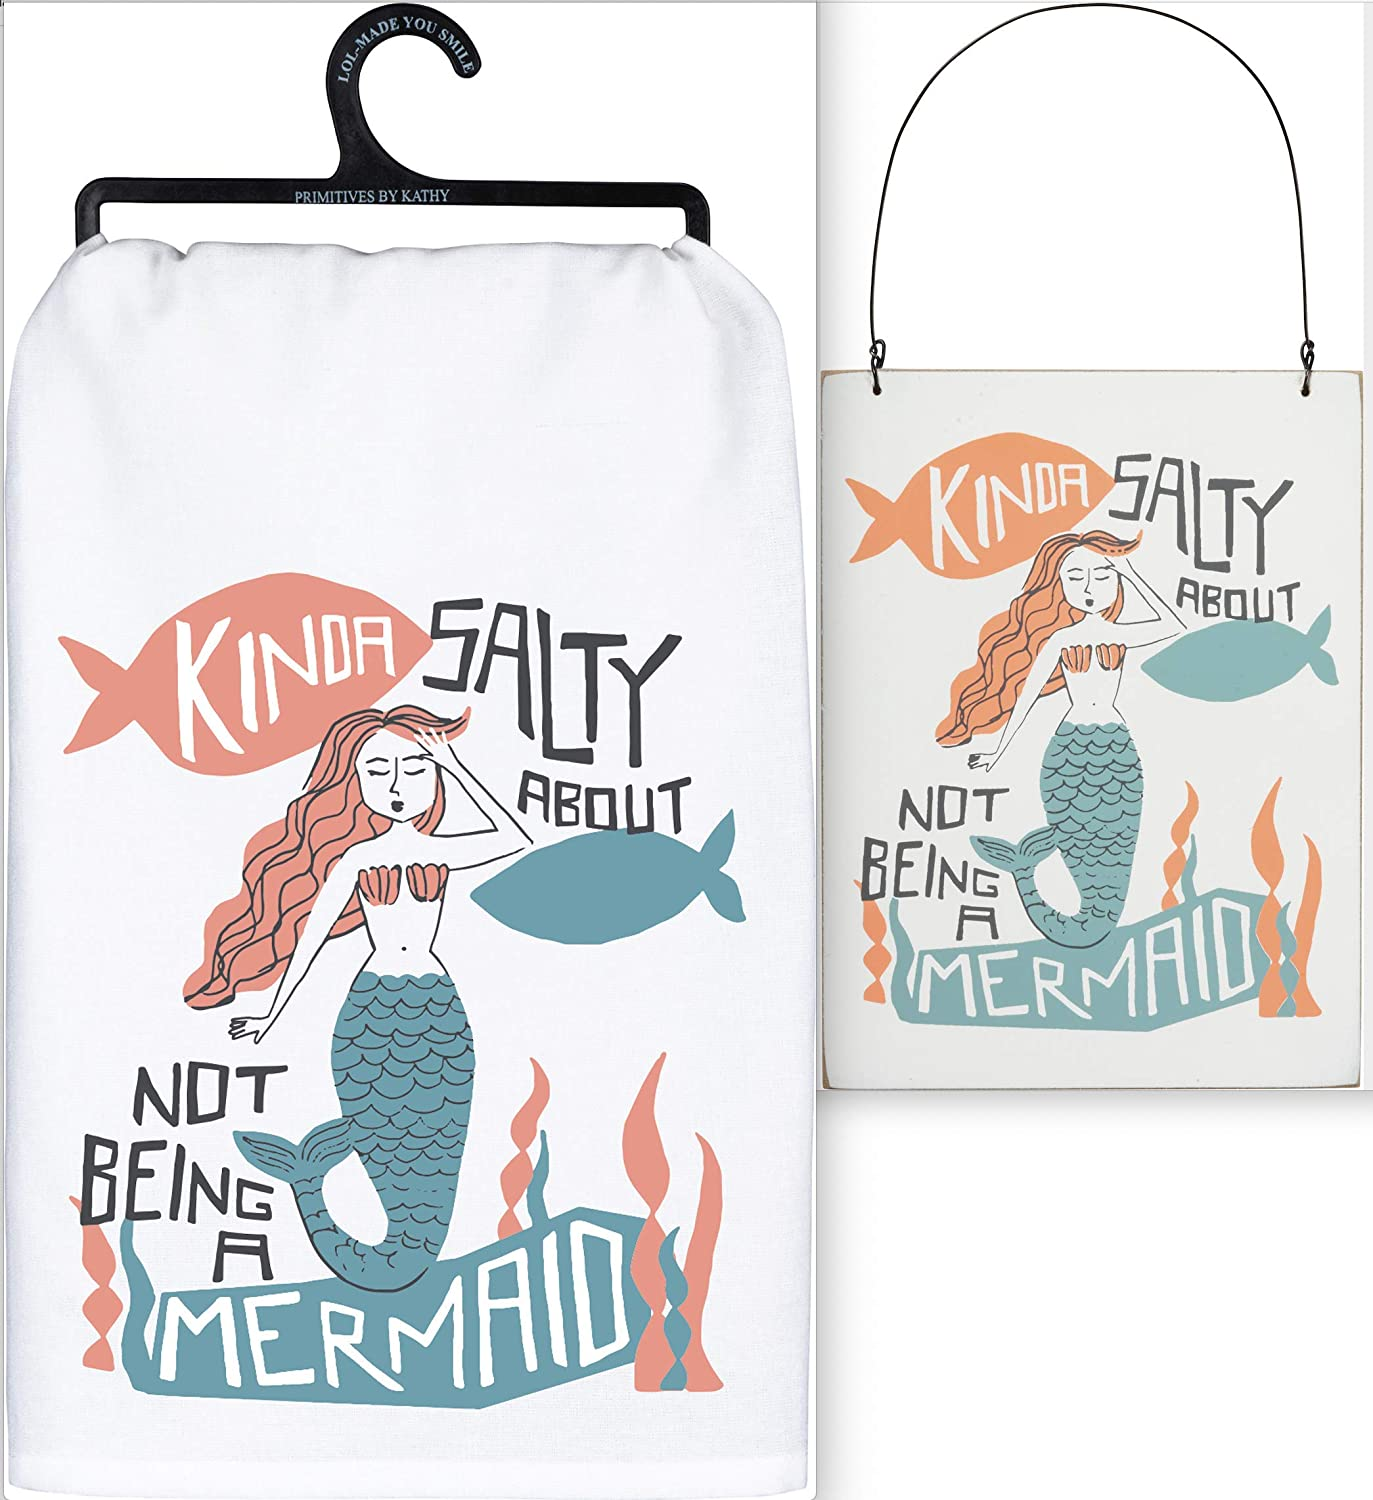 Primitives by Kathy Mermaid Bundle Set of 2 in White Organza Bag - Dish Towel and Hanging Sign - Kinda Salty About Not Being A Mermaid